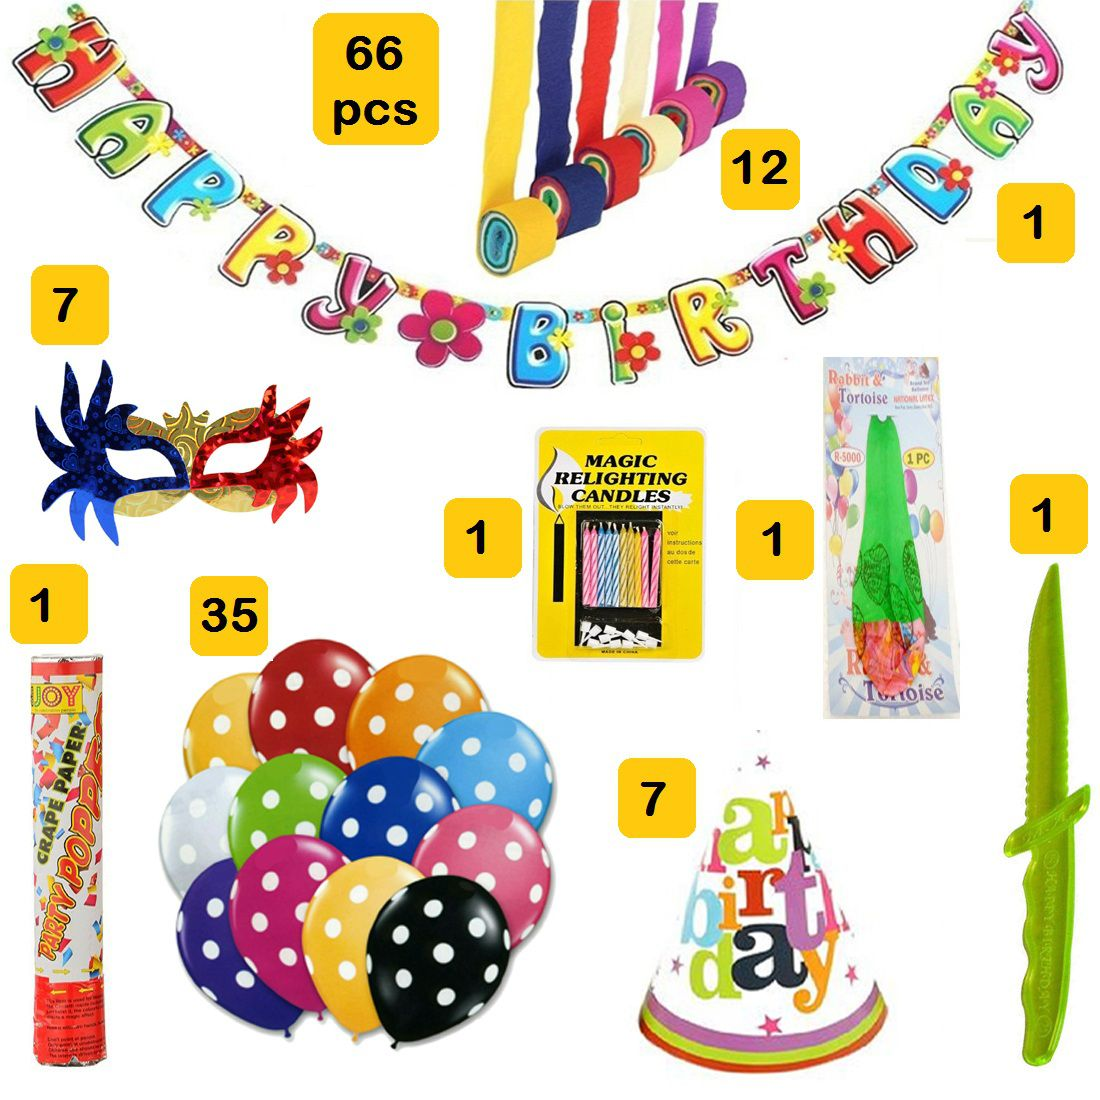 1 Happy Birthday Banner 12 Pcs Crepe Rolls 7 Party Eye Masks 10 Magic Candles Large Goodies Balloon Cake Cutting Knife